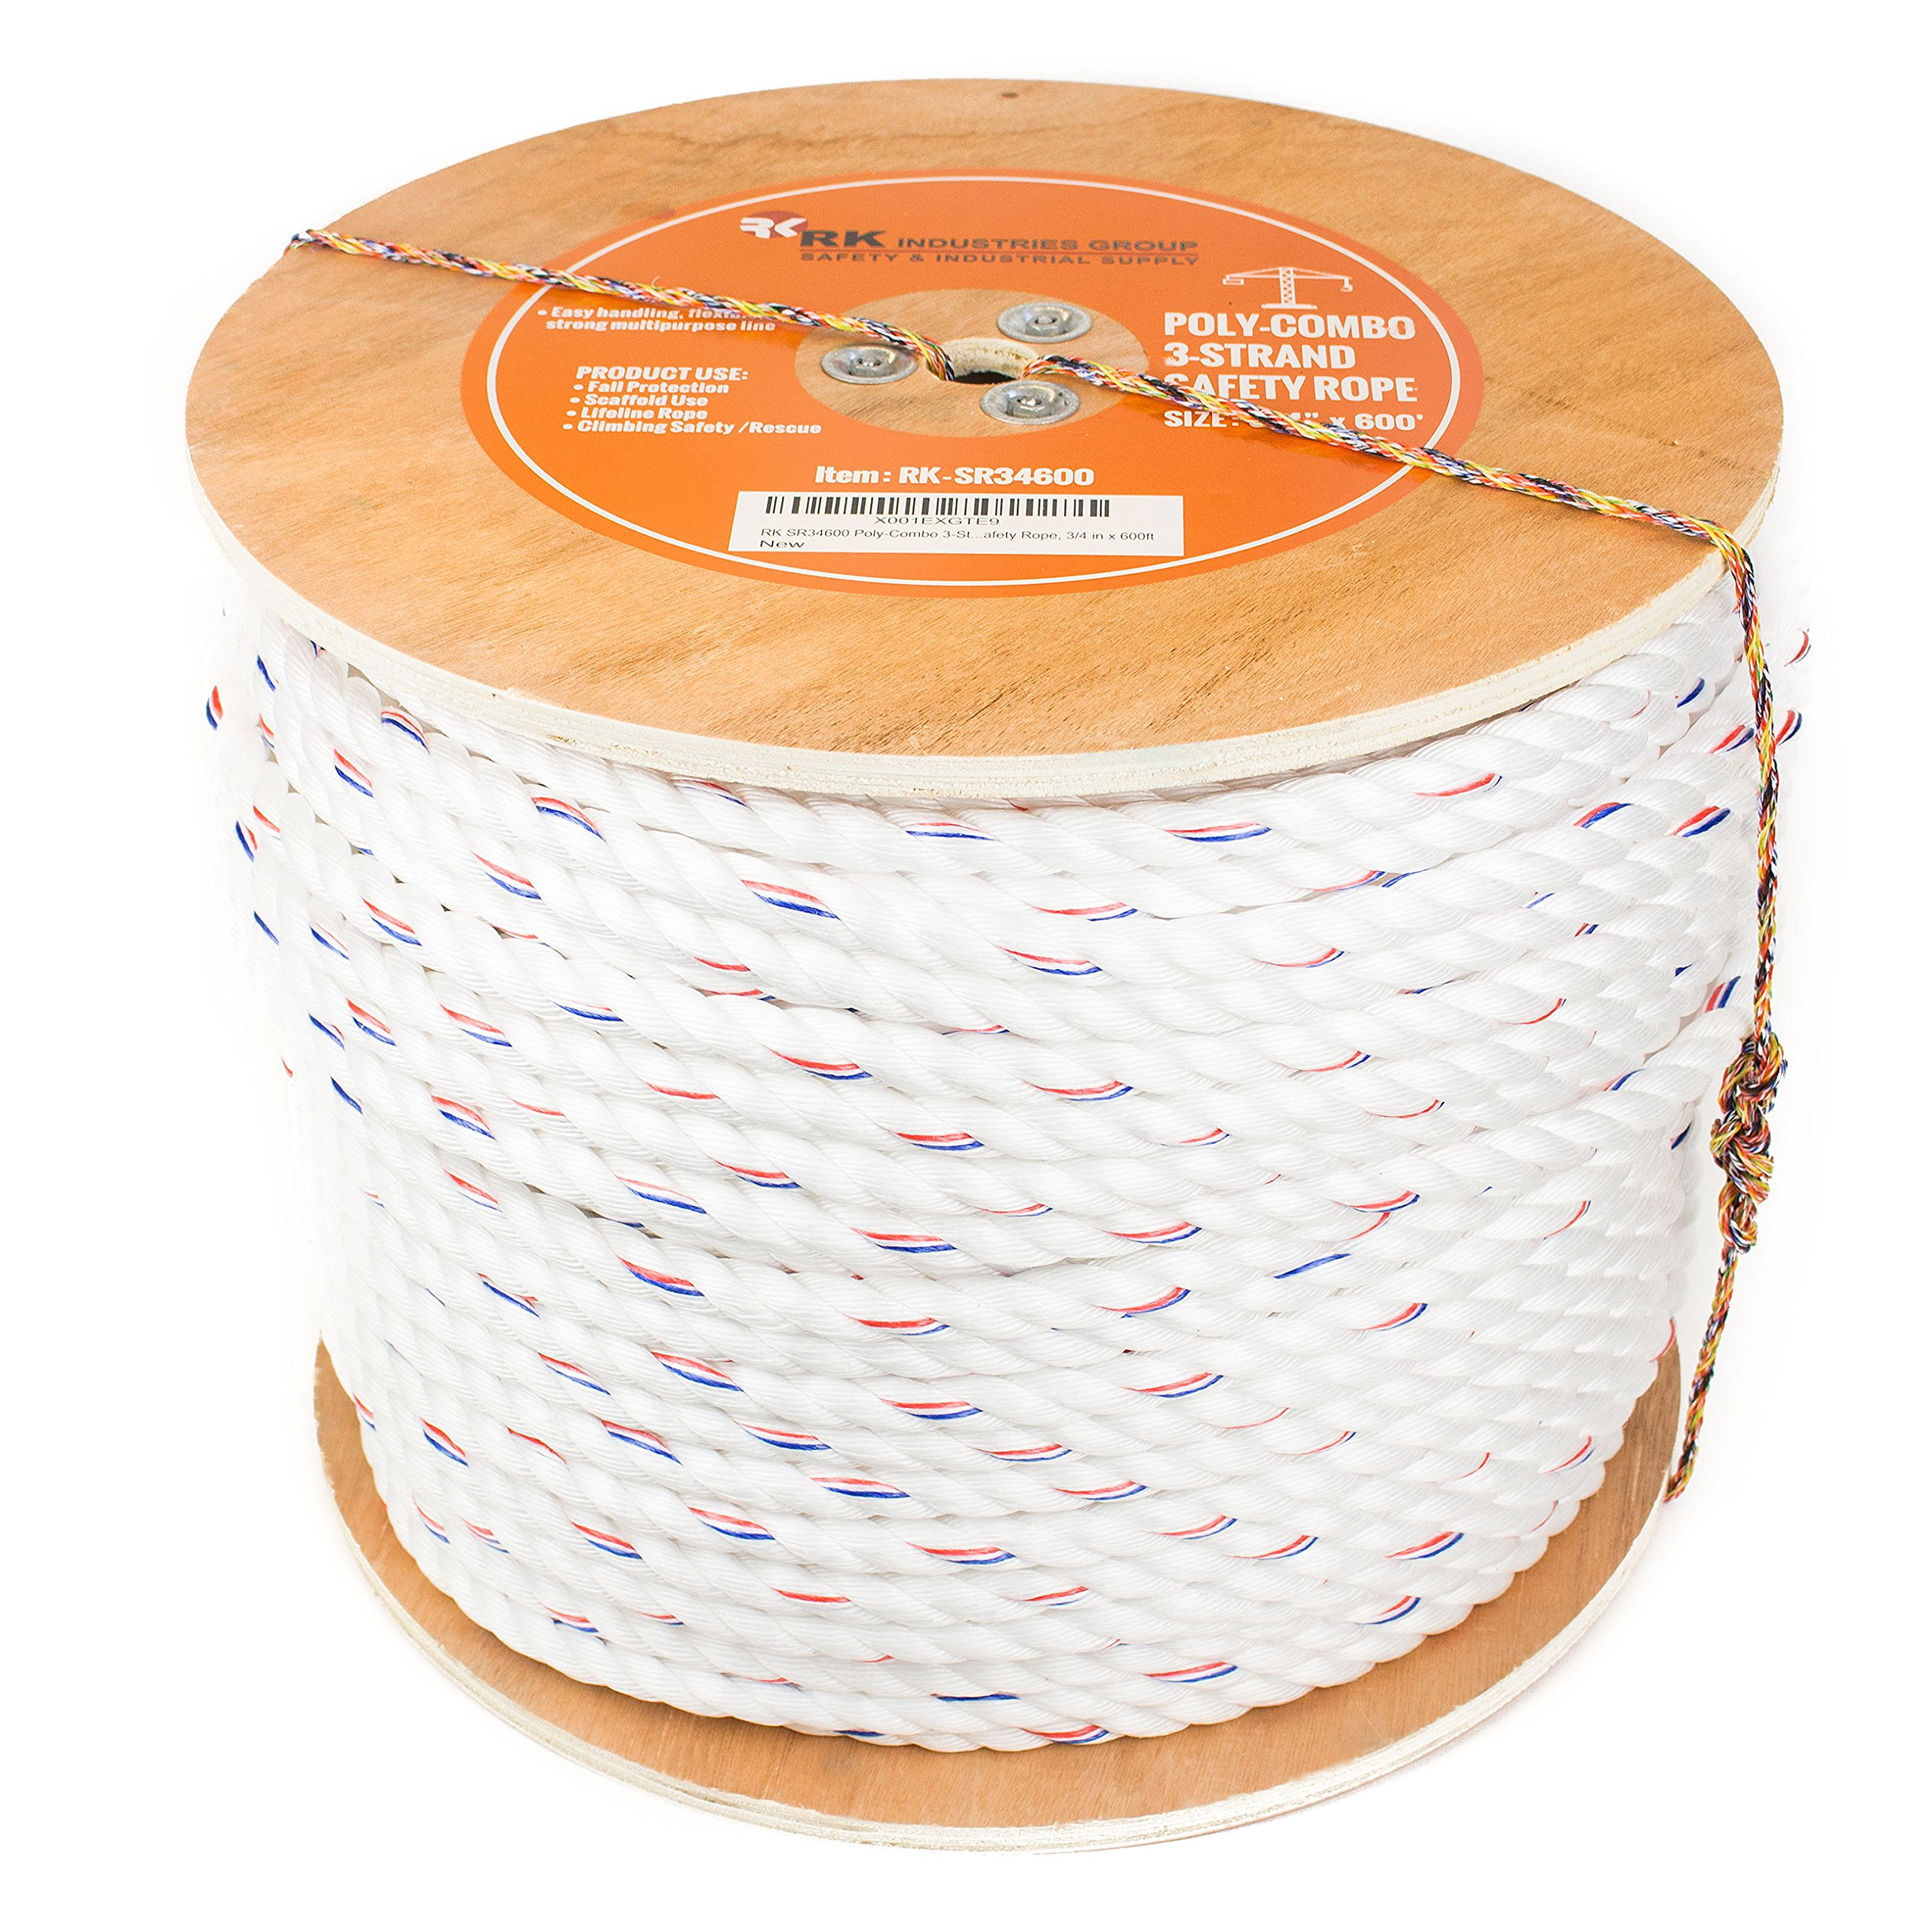 RK SR34600 Poly-Combo 3-Strand Safety Rope, 3/4 in x 600 ft